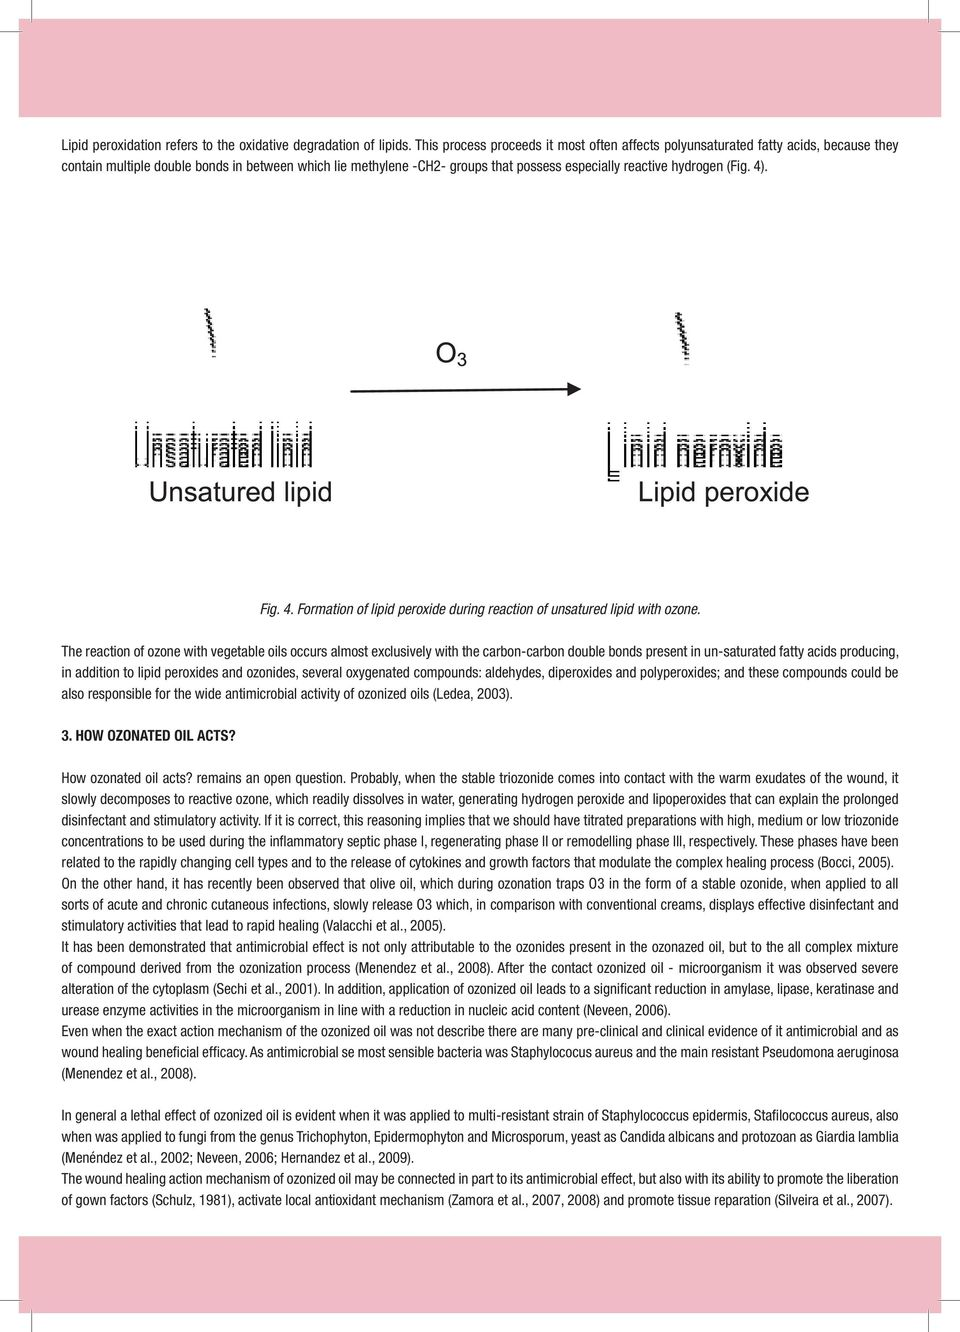 hydrogen (Fig. 4). Fig. 4. Formation of lipid peroxide during reaction of unsatured lipid with ozone.